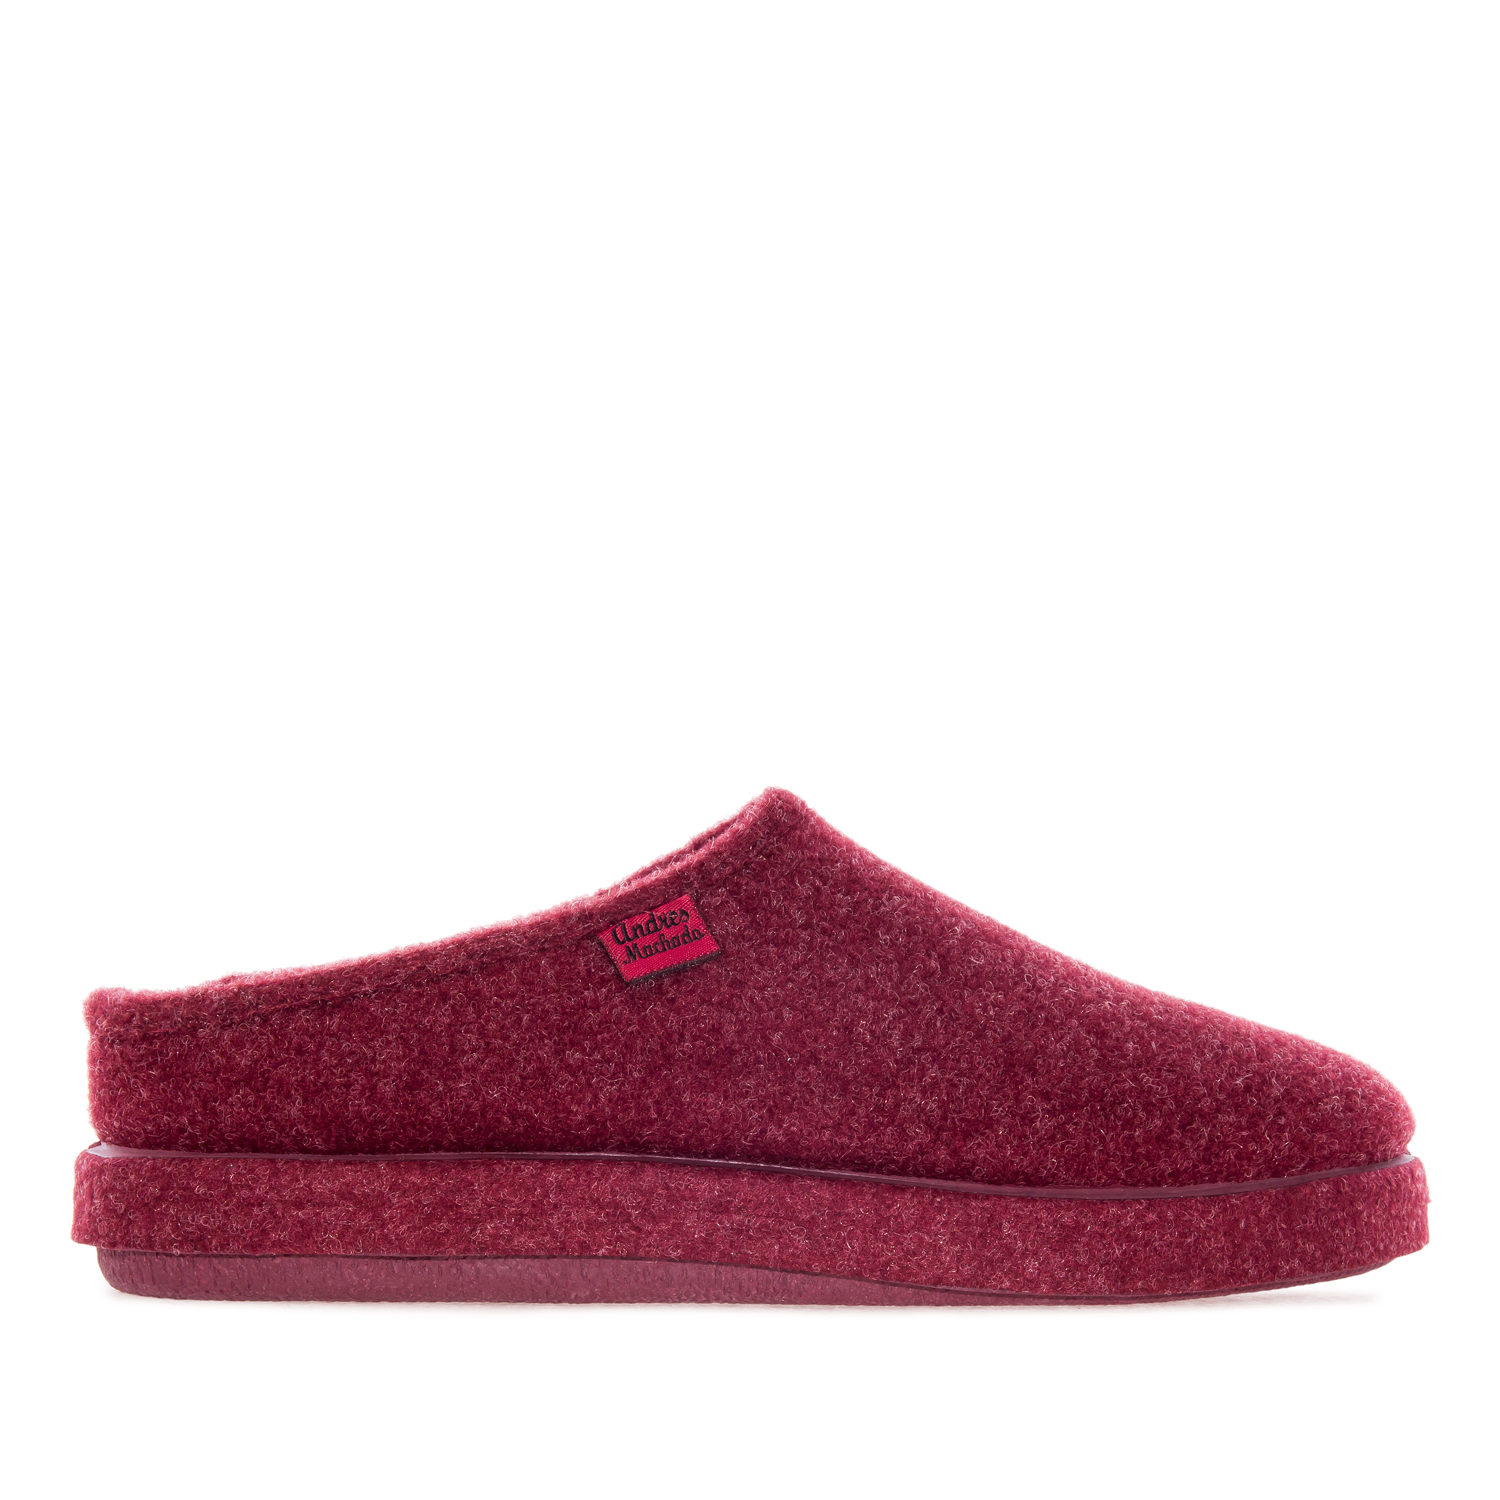 Very comfortable Burgundy Felt Slippers with footbed